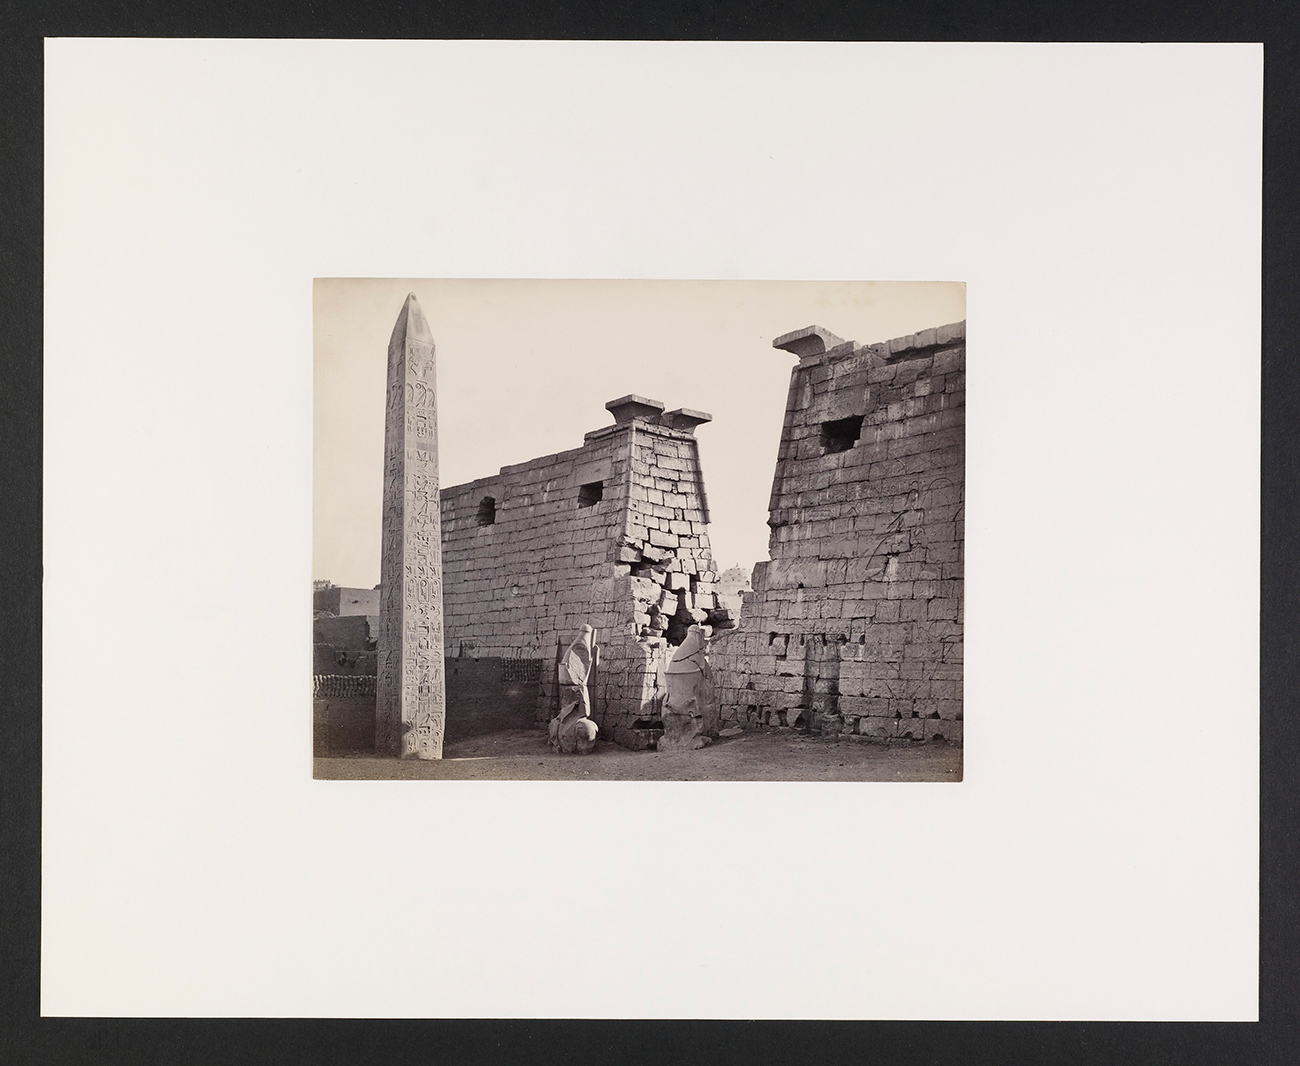 Black and white photograph with an obelisk at left and a wall running along the right side of the frame.